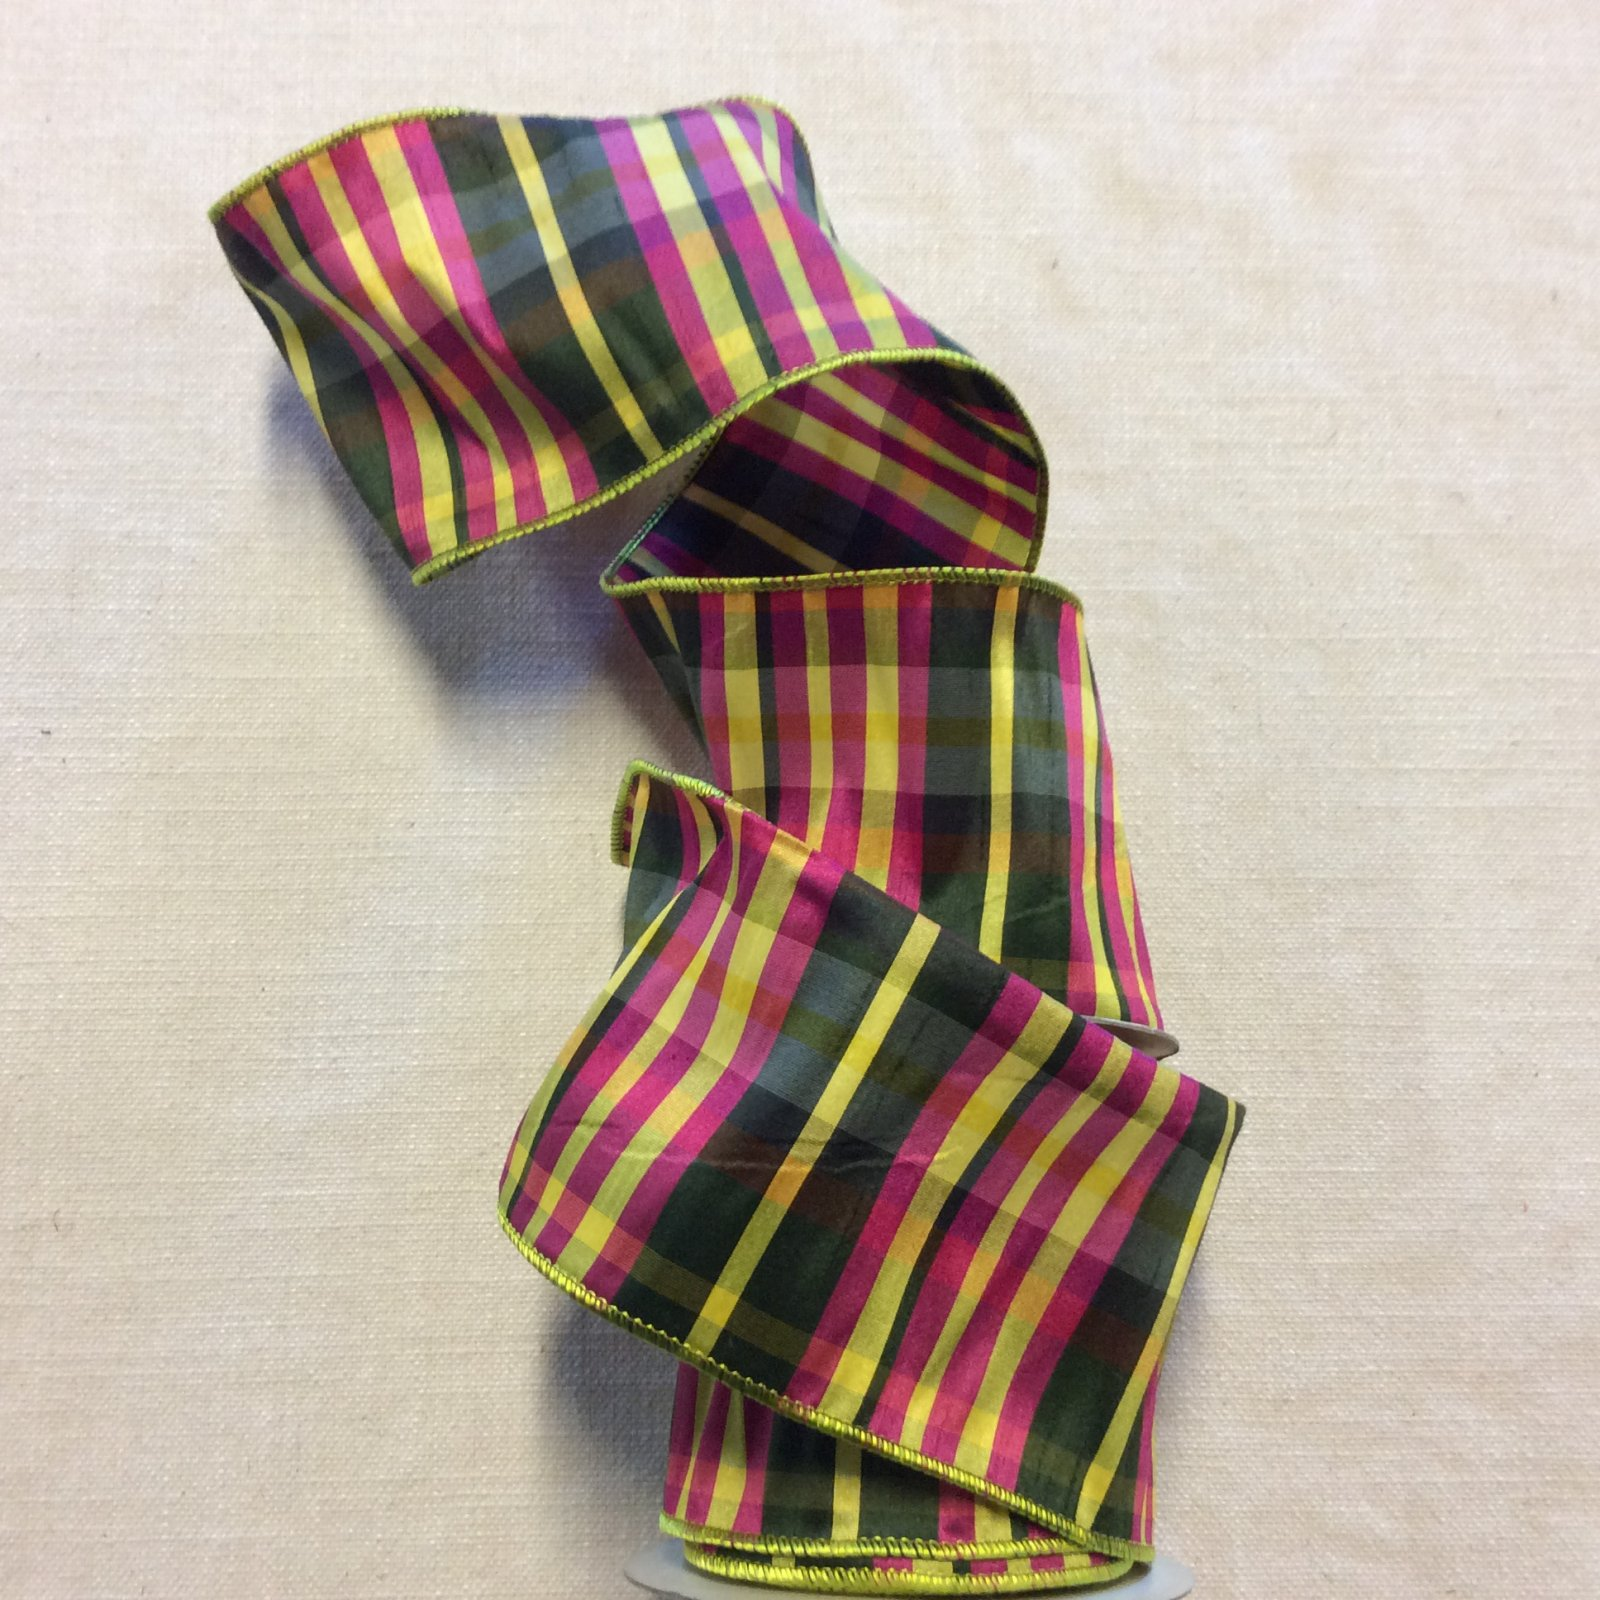 Faux Silk Taffeta Green Pink and Yellow Plaid Striped Madras Like Spring Wired Ribbon Decor Trim RIB1379